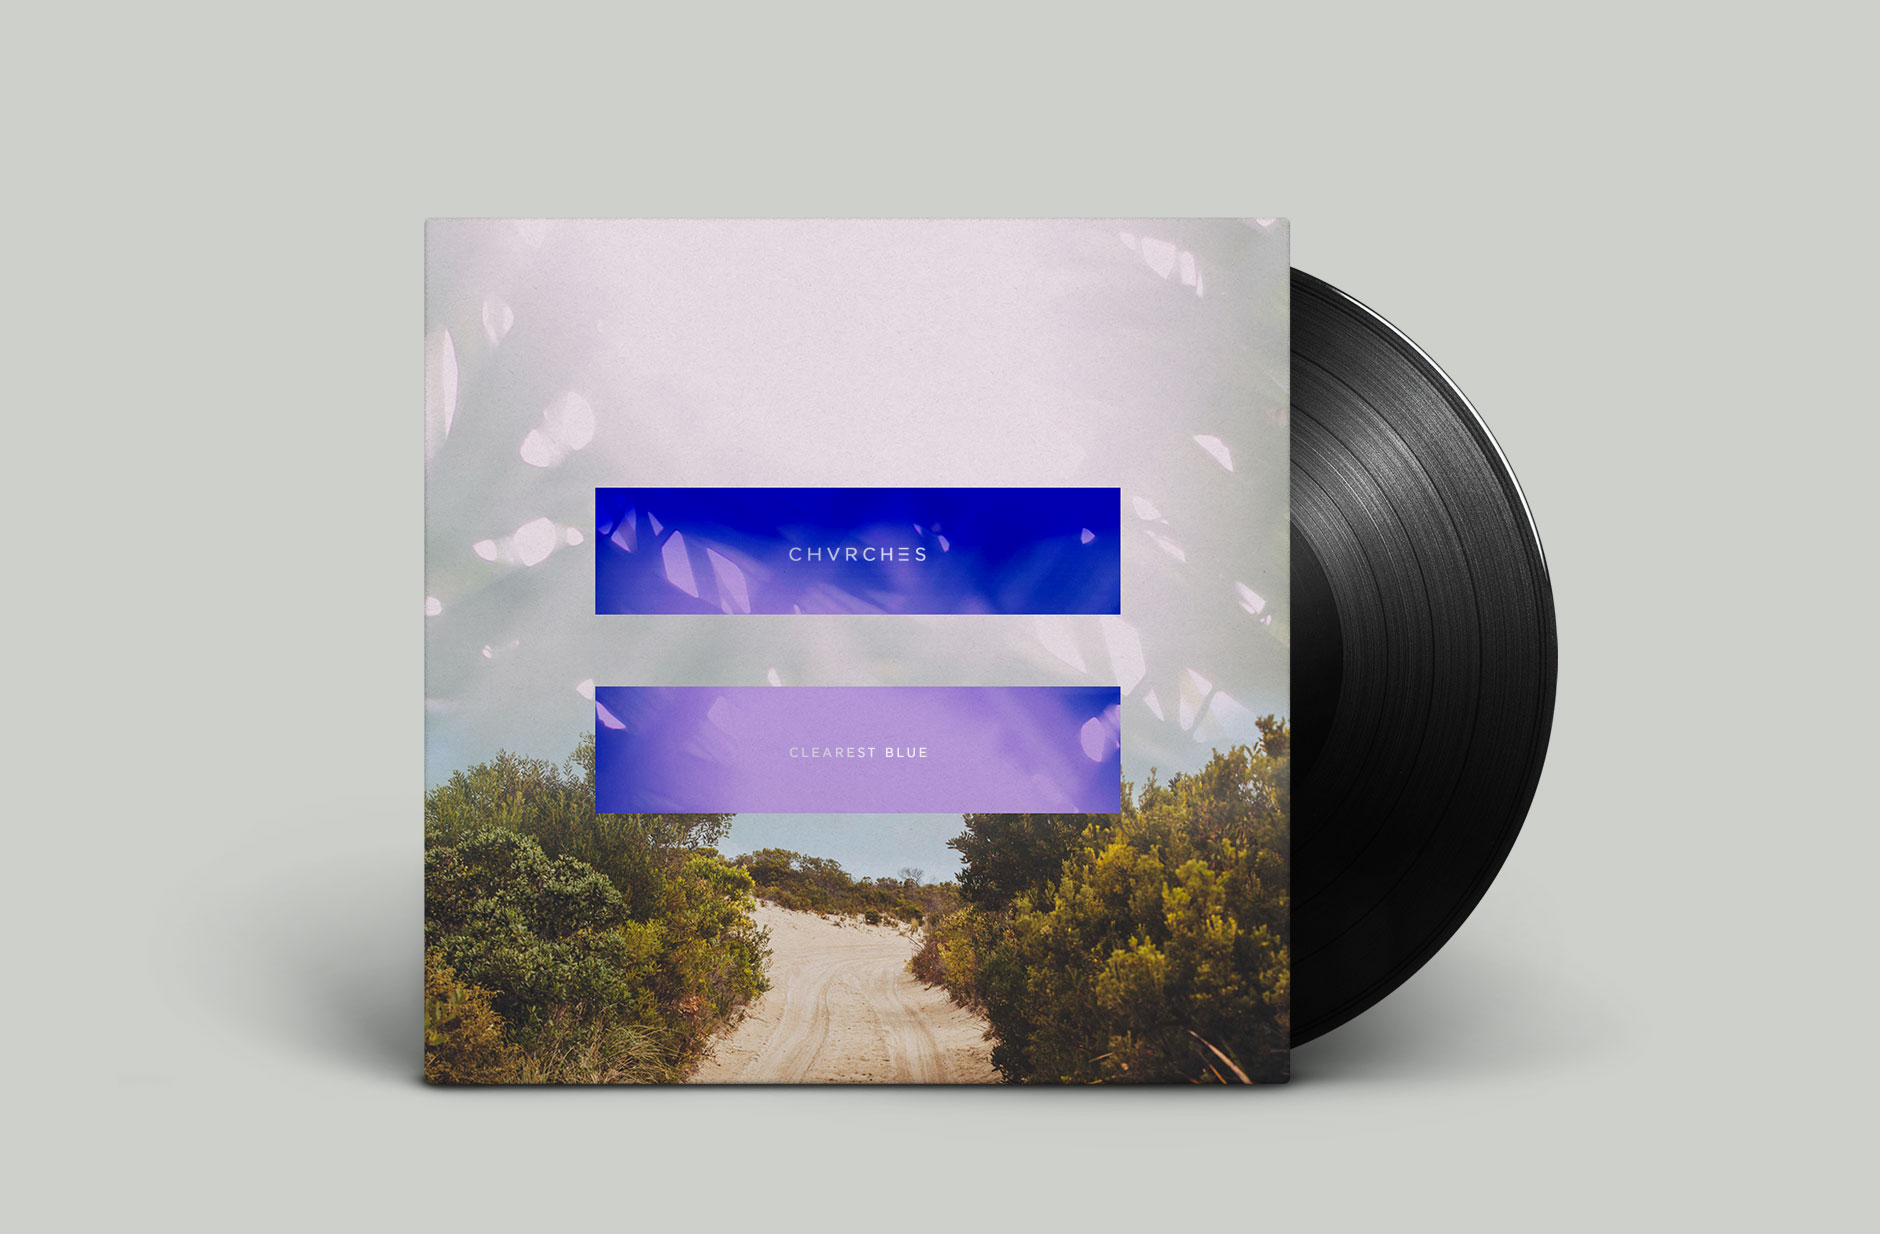 Chvrches Band Music Clearest Blue Record Sleeve Design